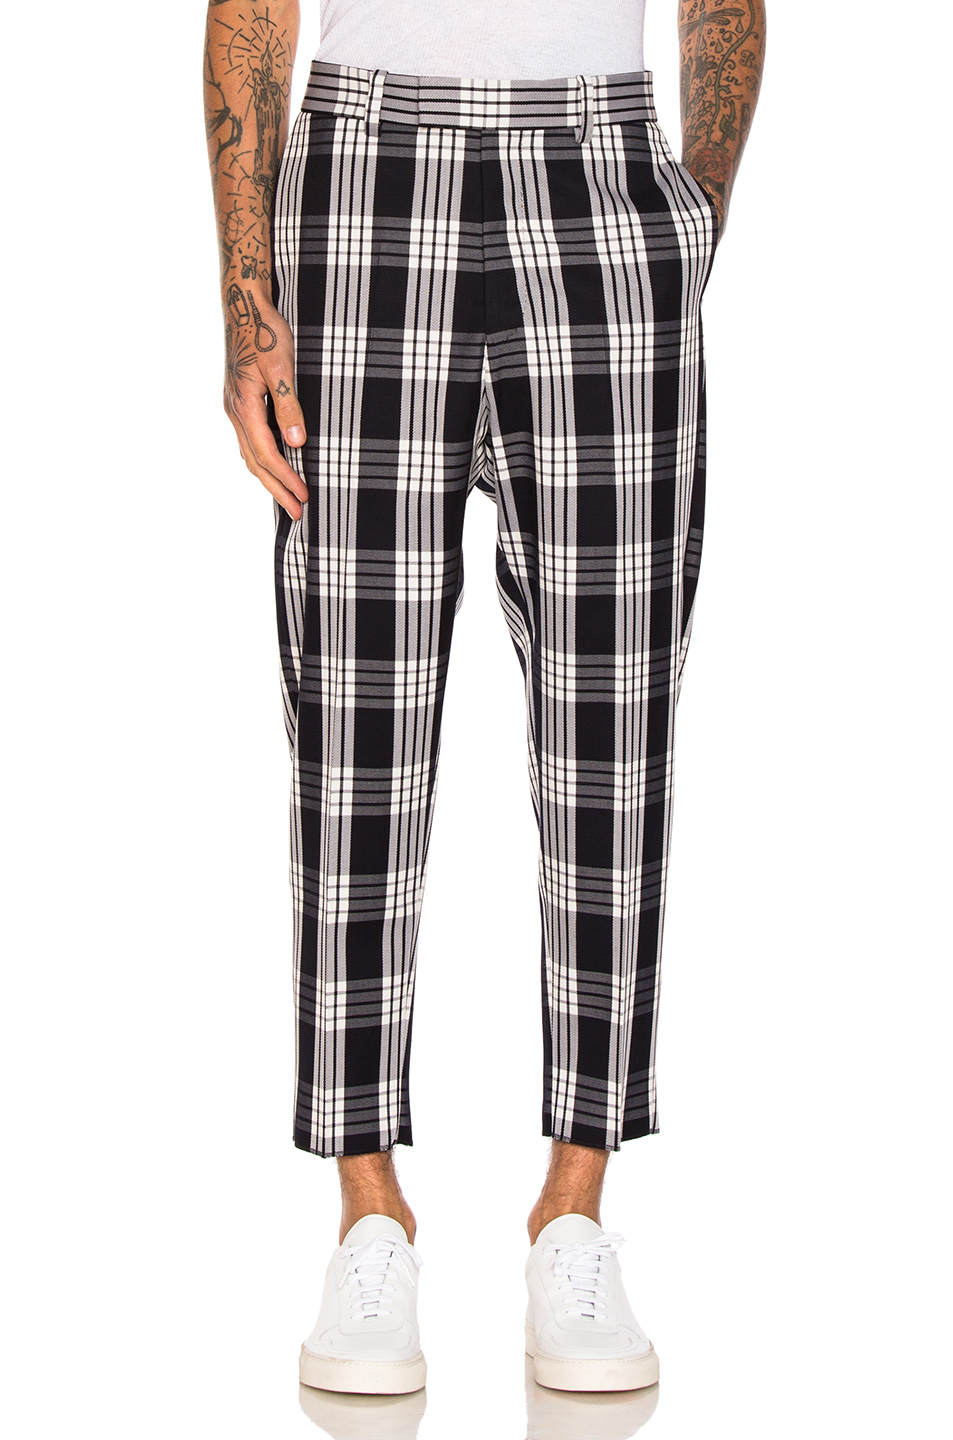 OAMC Tailored Plaid Pants in Blue,Checkered & Plaid